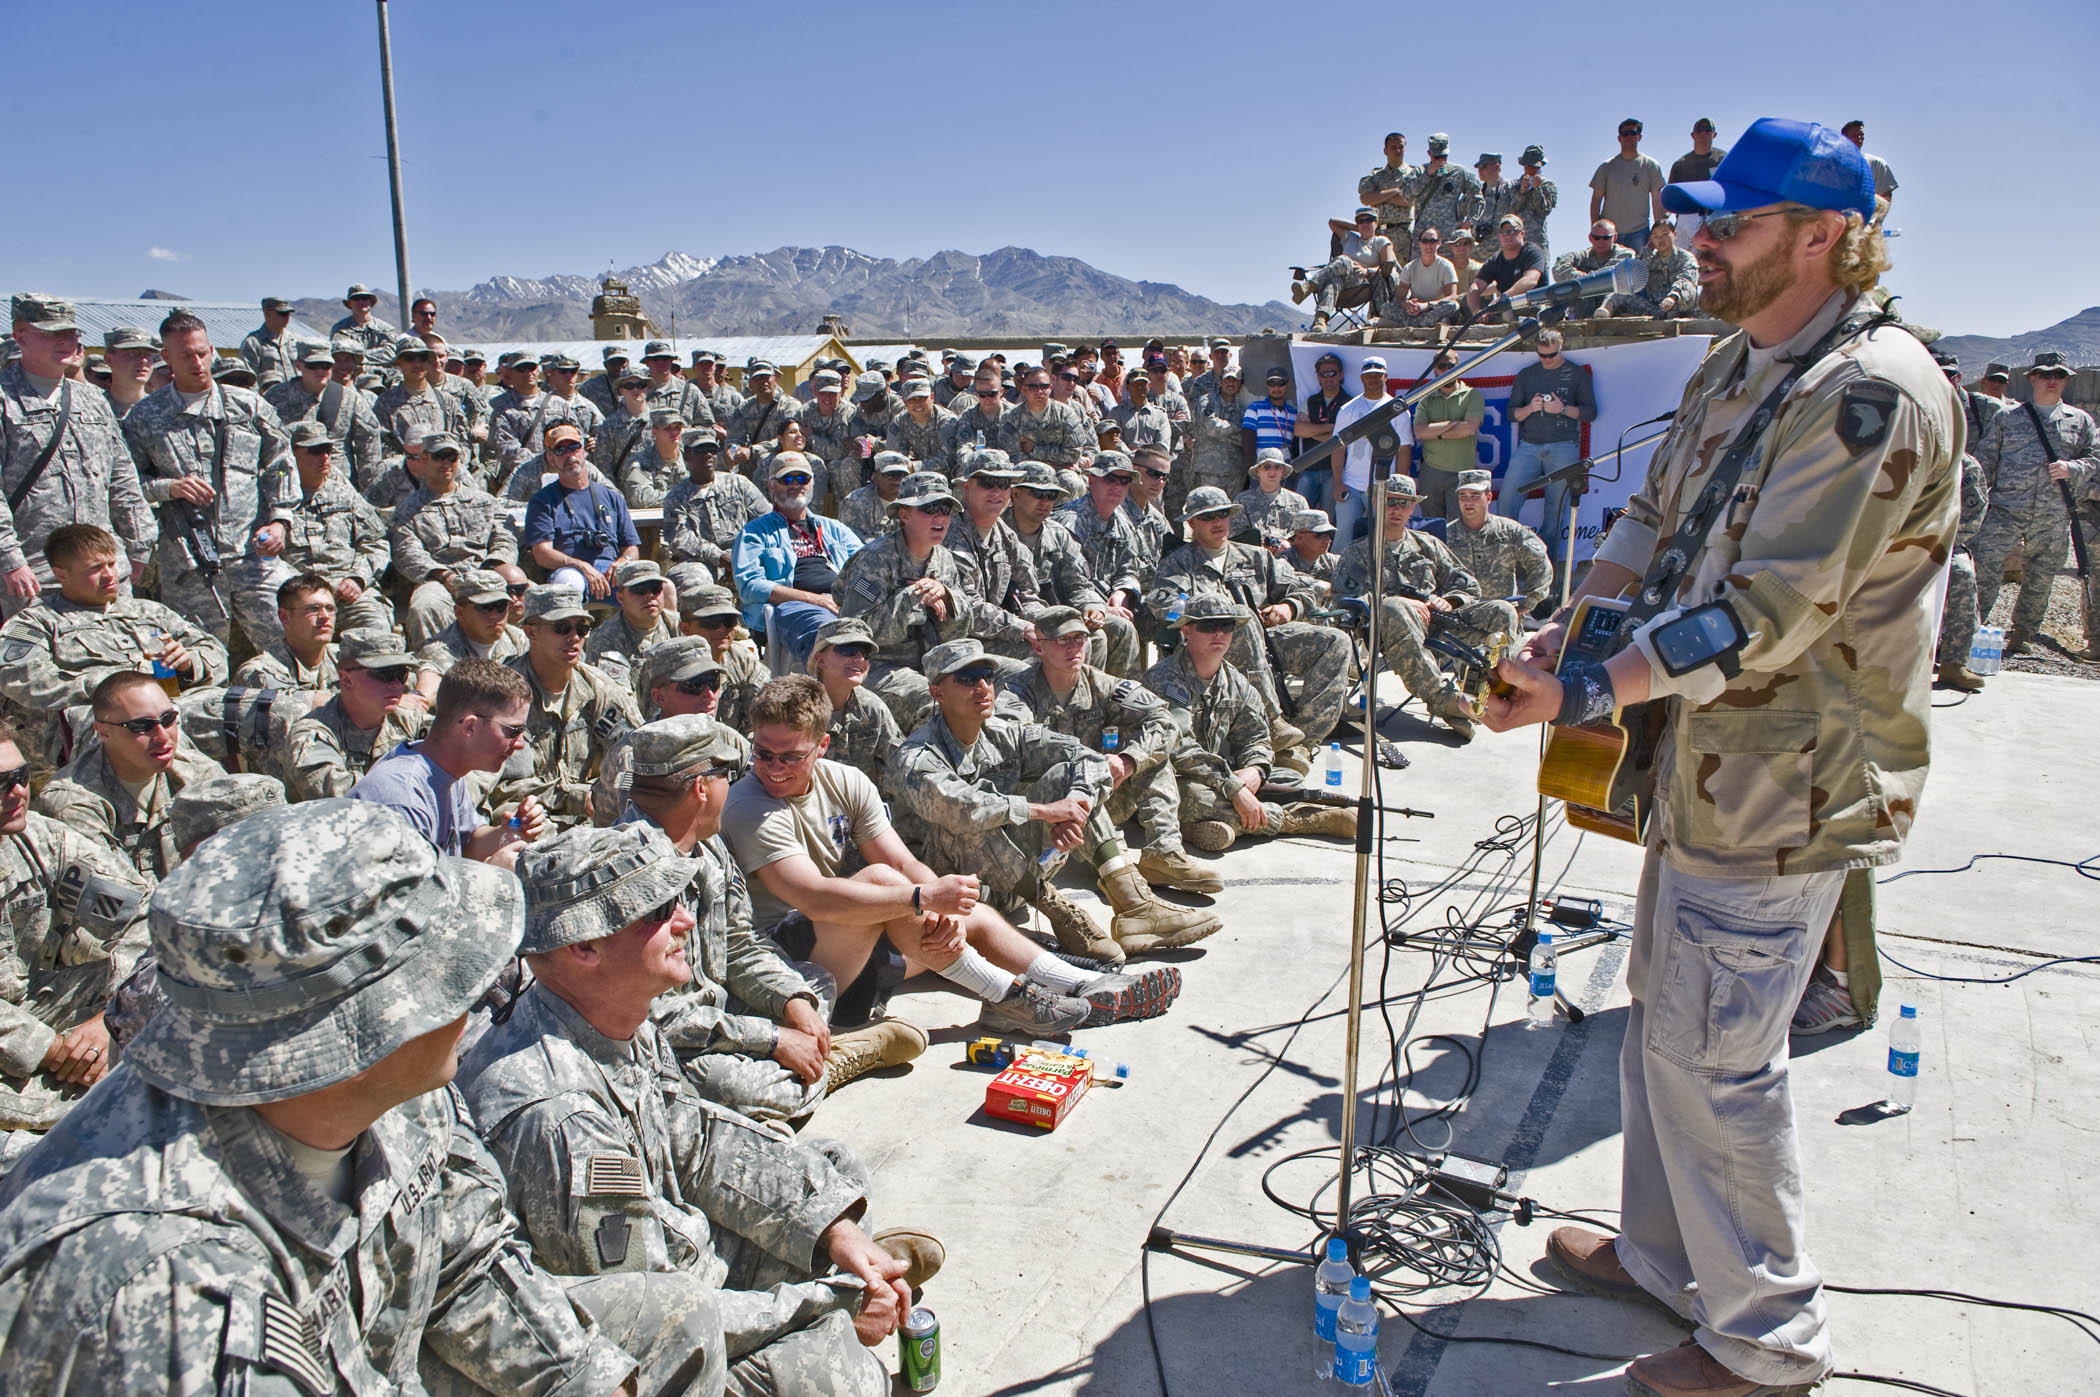 Toby Keith in Afghanistan putting on shows at Forward Operating Bases in 2008. Here at FOB Gardez, where the soldiers were able to get up really close in this acoustics show. (Dave Gatley/USO)